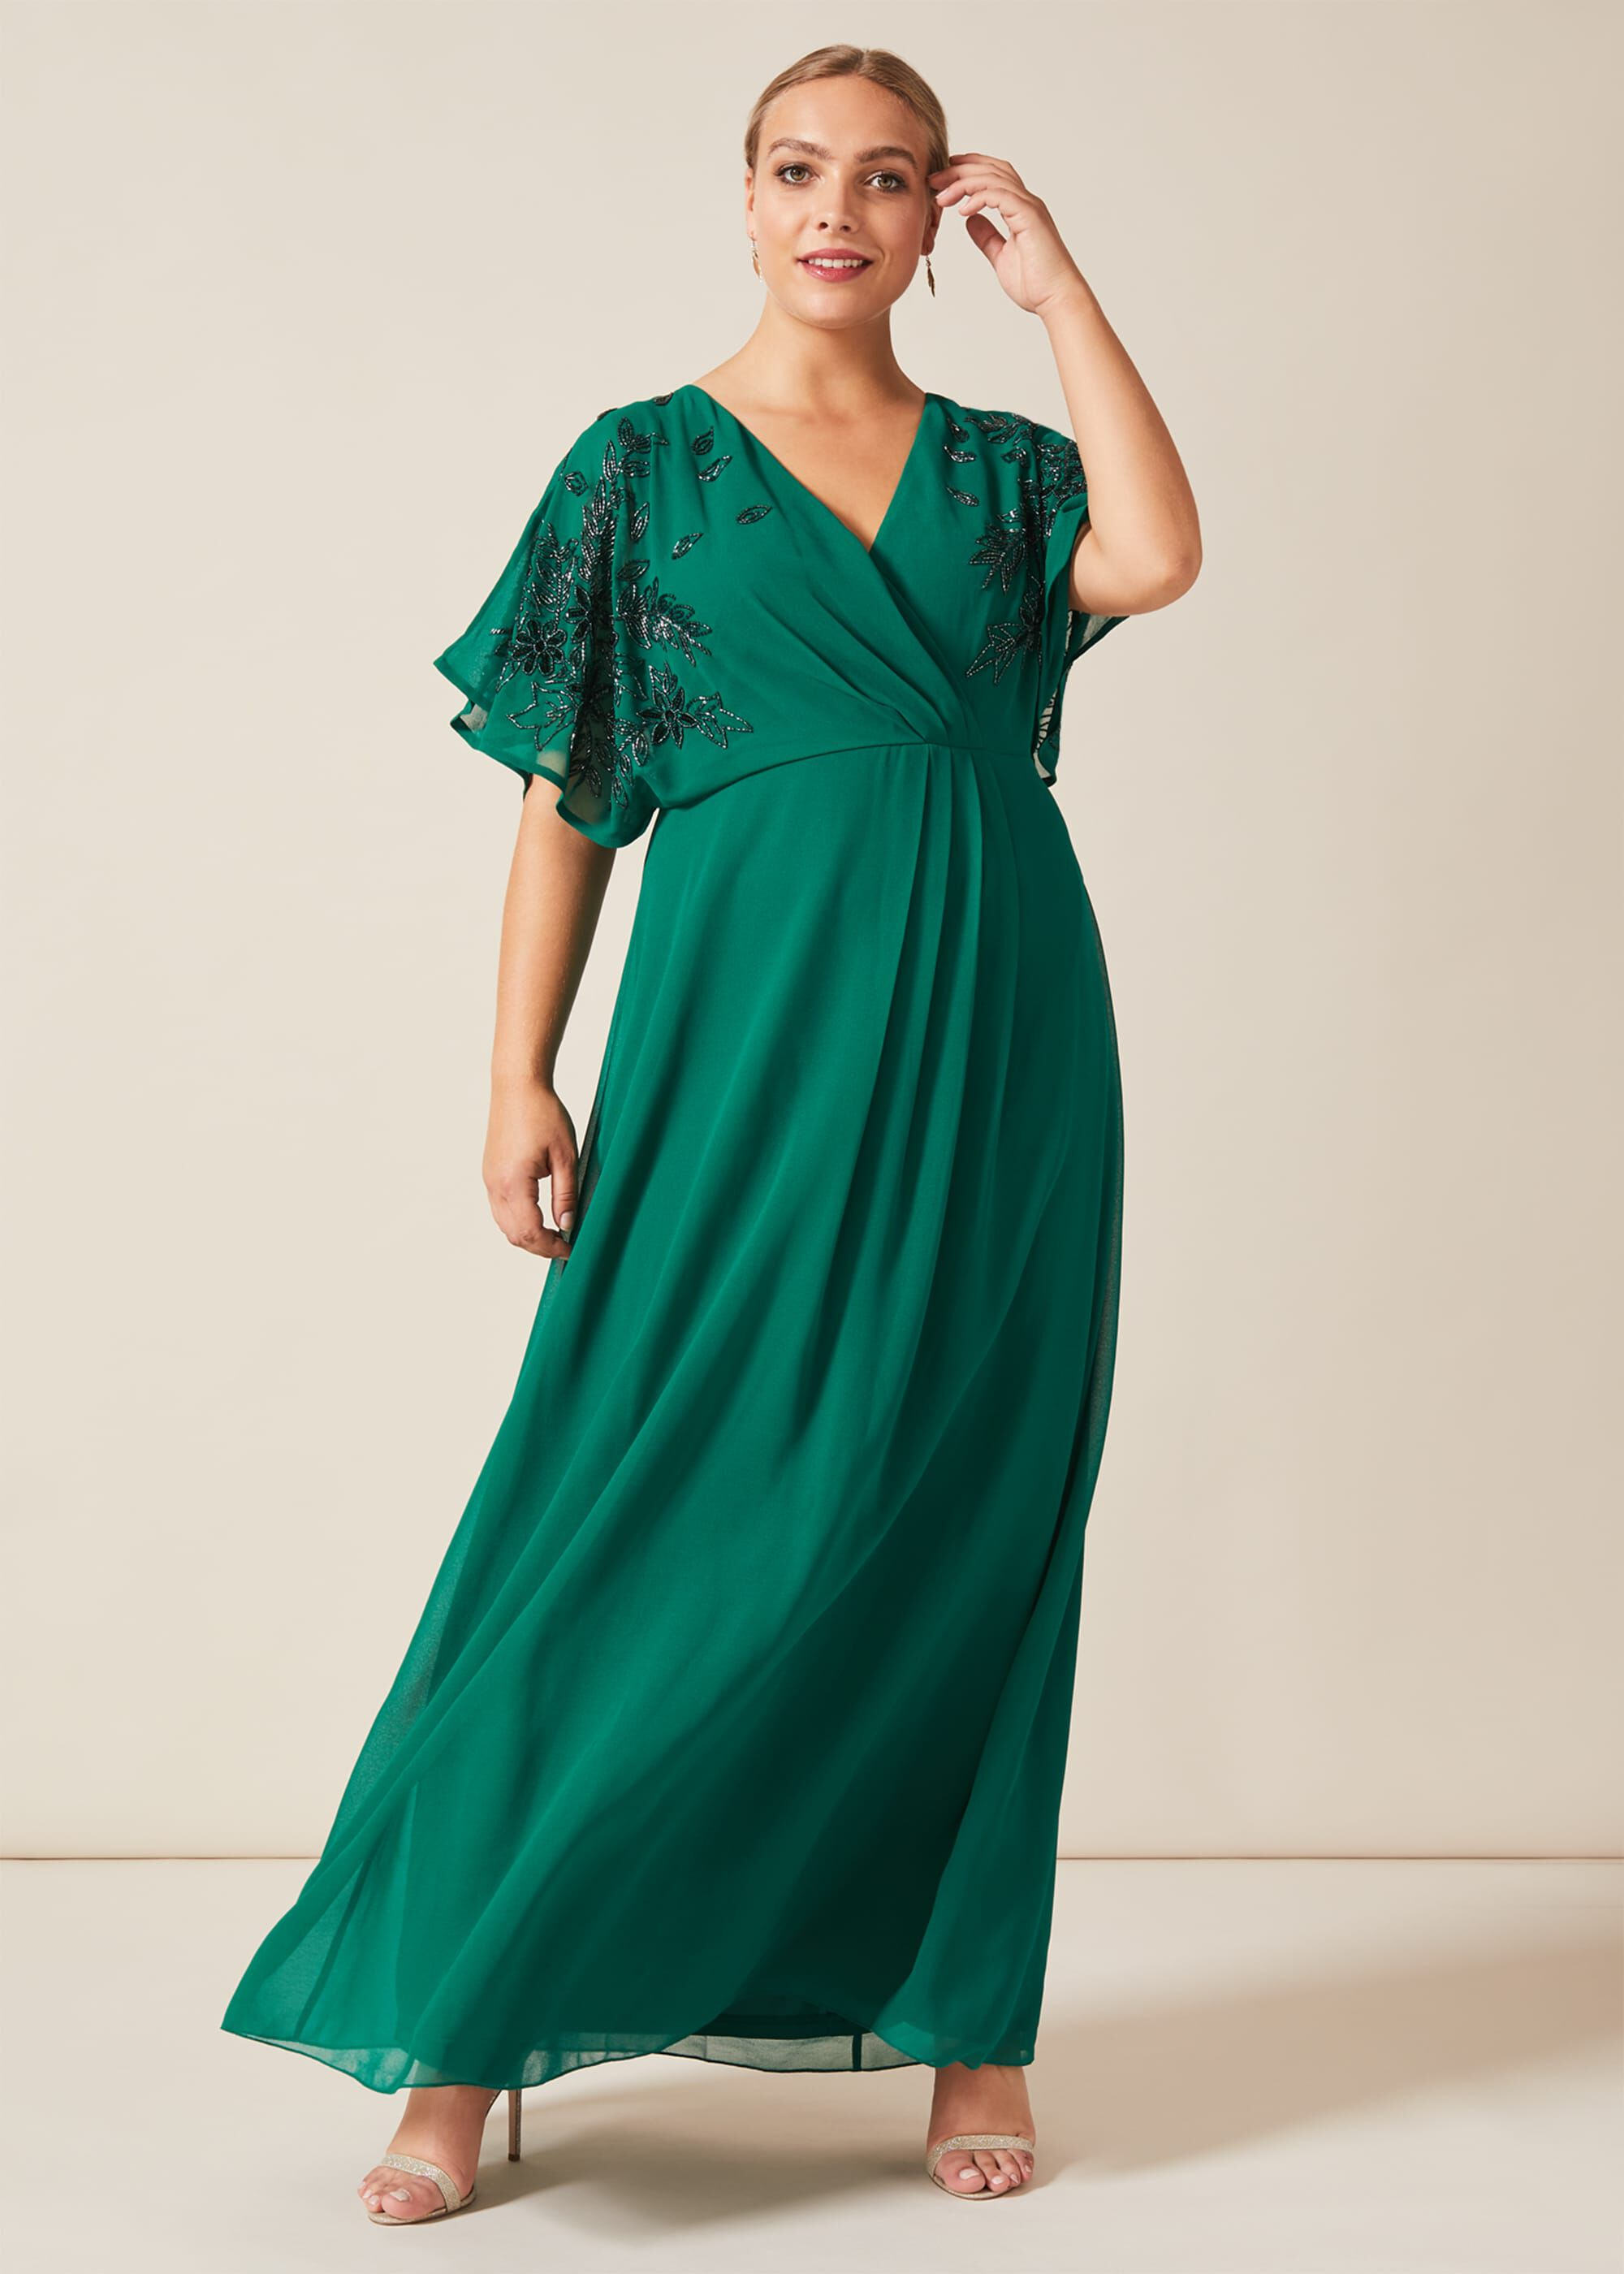 Studio 8 Tabitha Beaded Maxi Dress, Green, Maxi, Occasion Dress